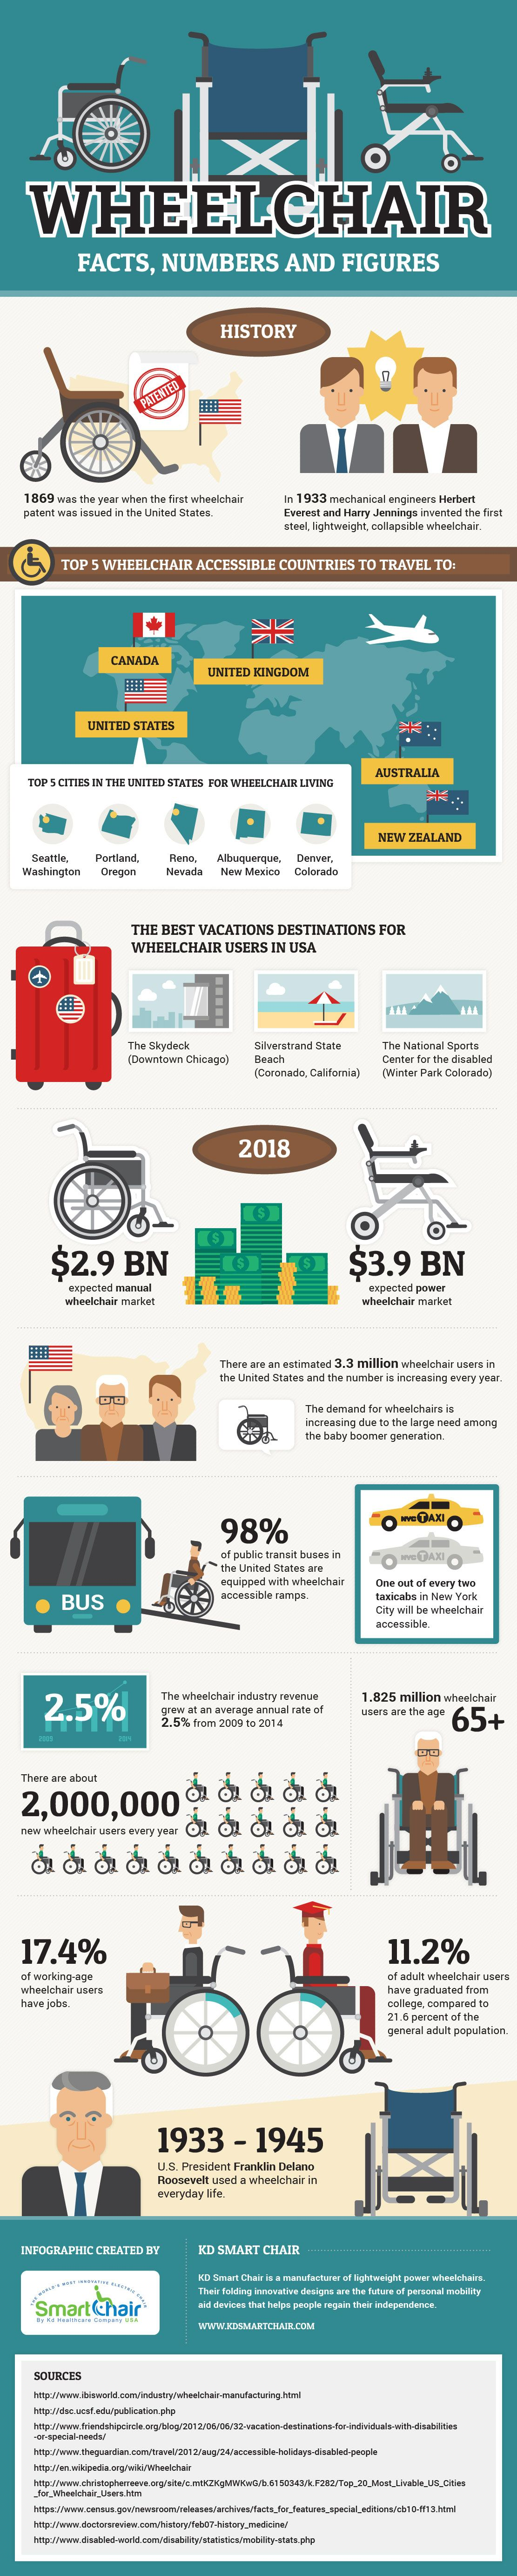 Wheelchair Facts, Numbers and Figures #infographic